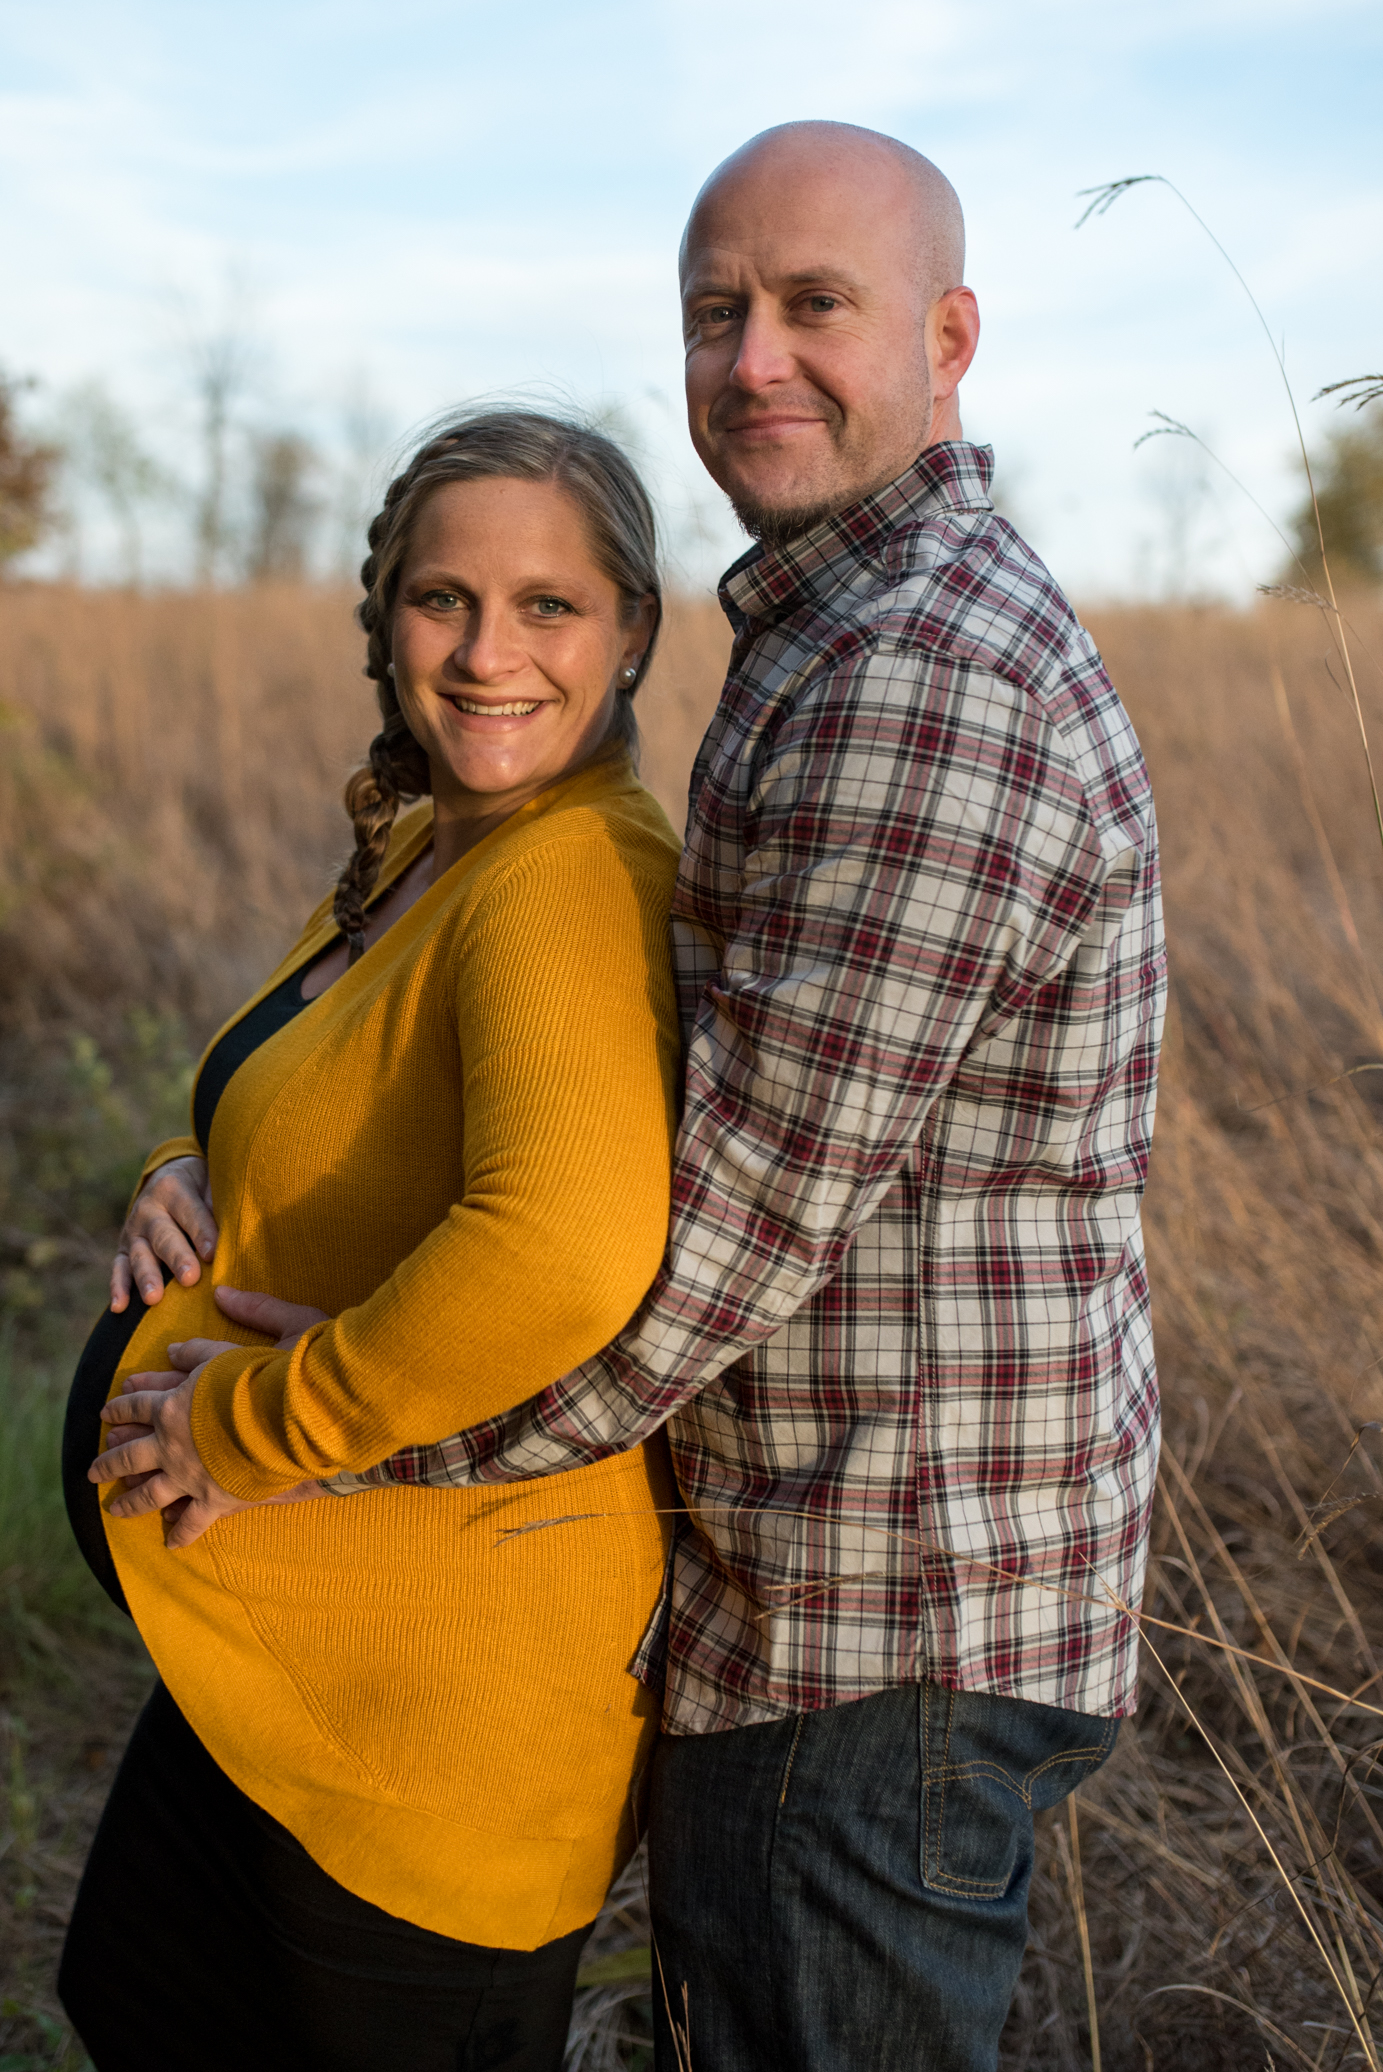 Dad holding mom and her pregnant belly in a field smiling